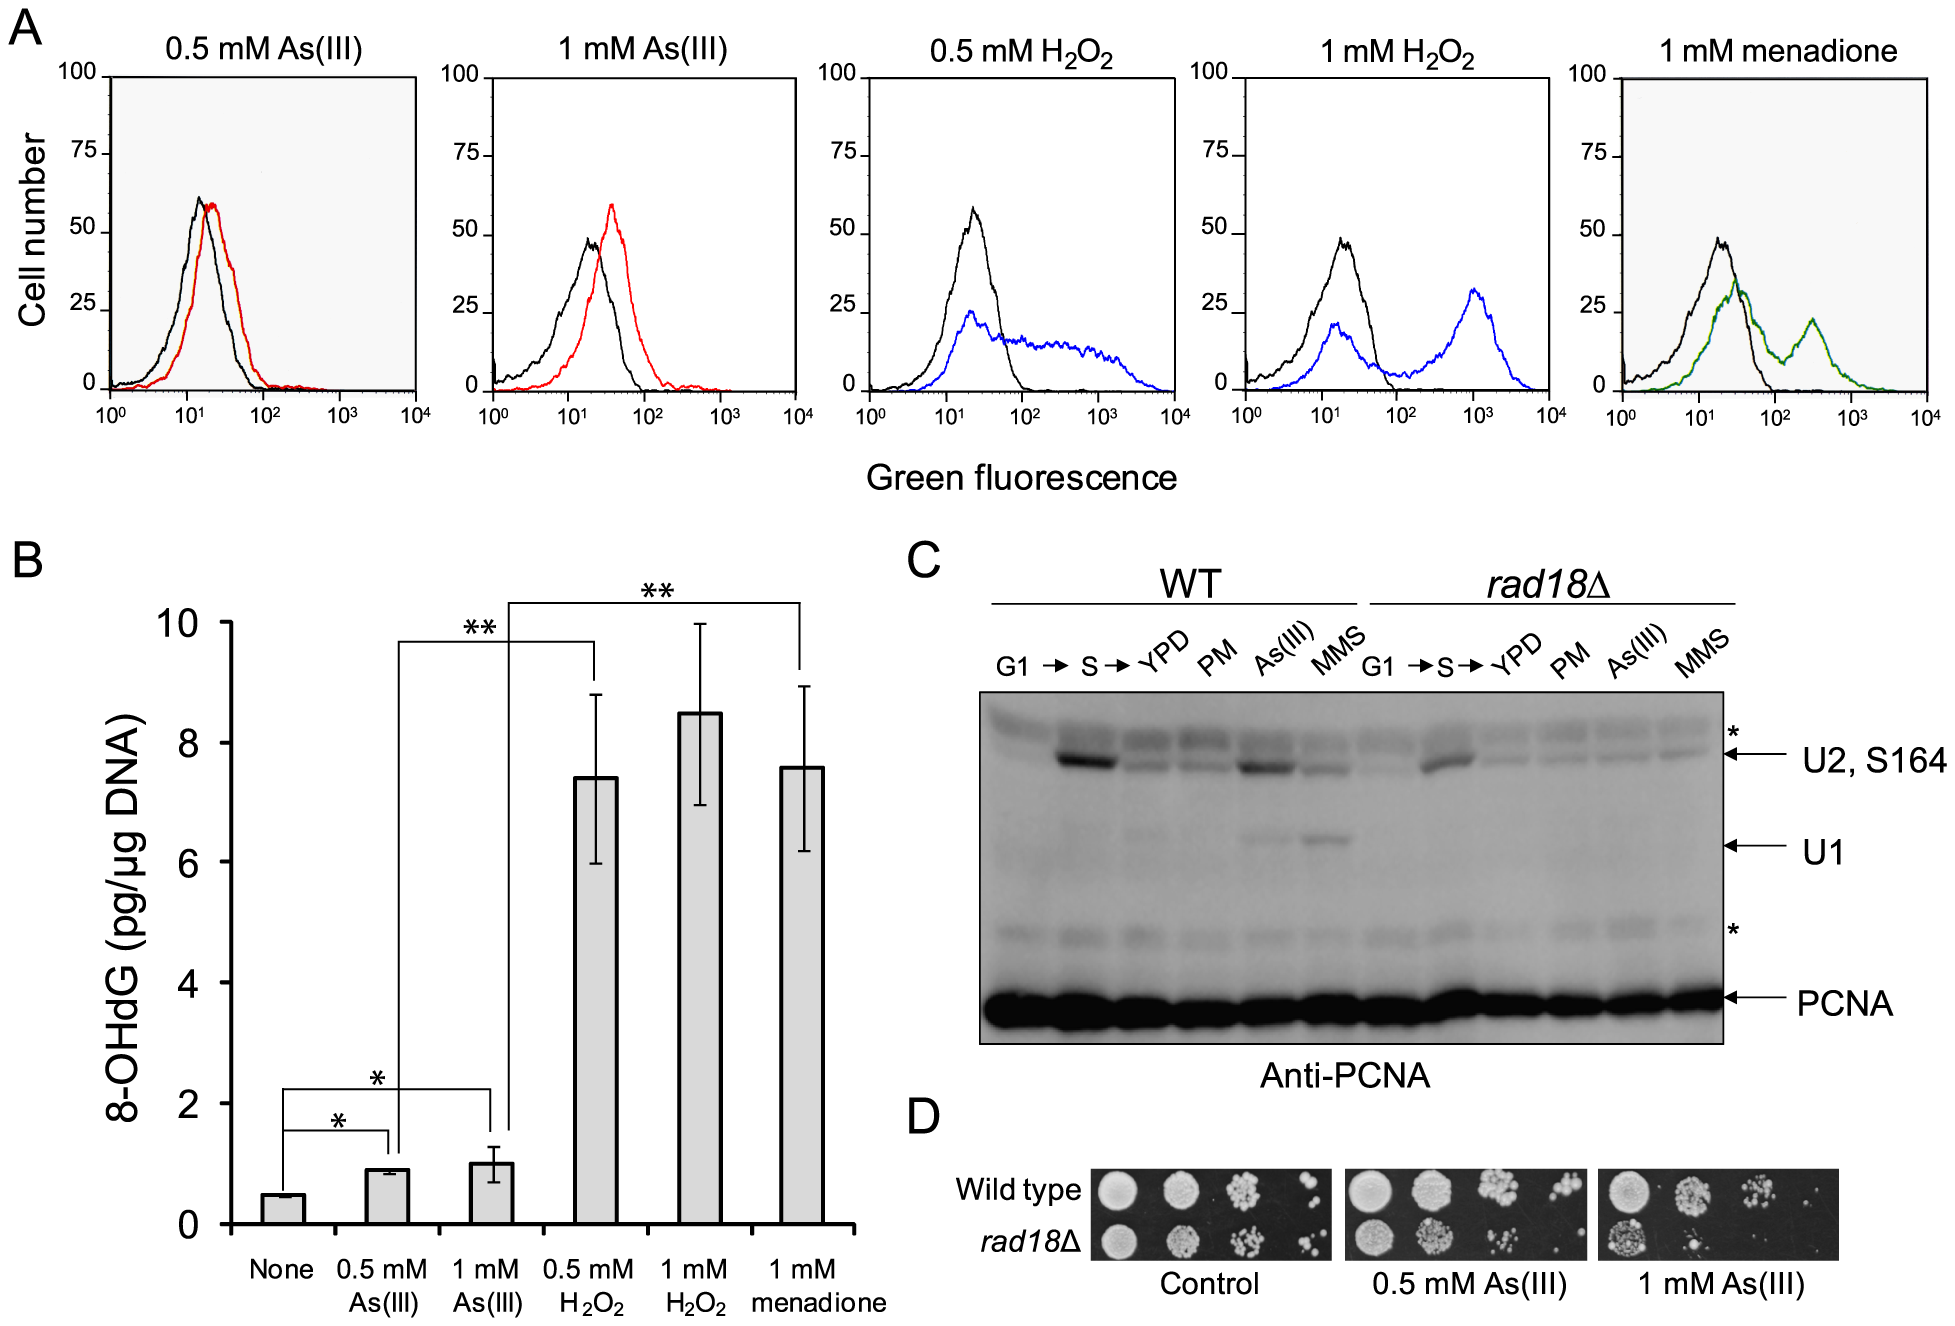 As(III) treatment induces low level of oxidative stress and replication-associated DNA damage.